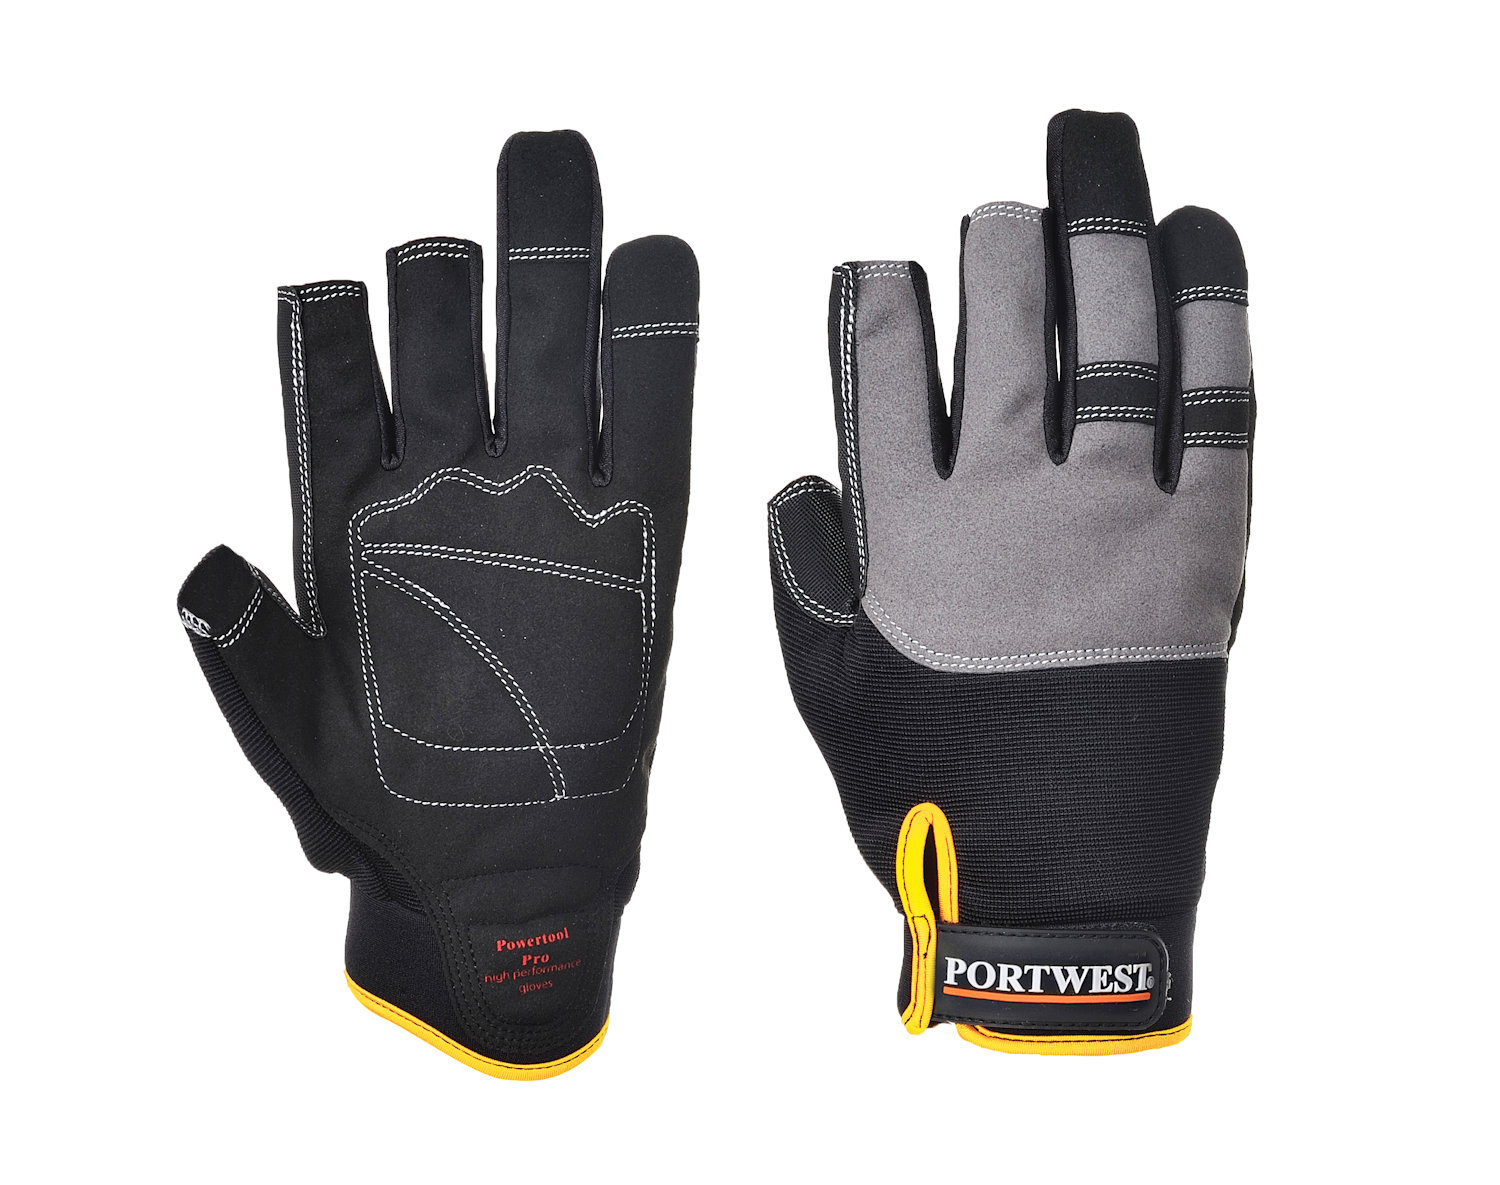 7A740 Mechanic glove